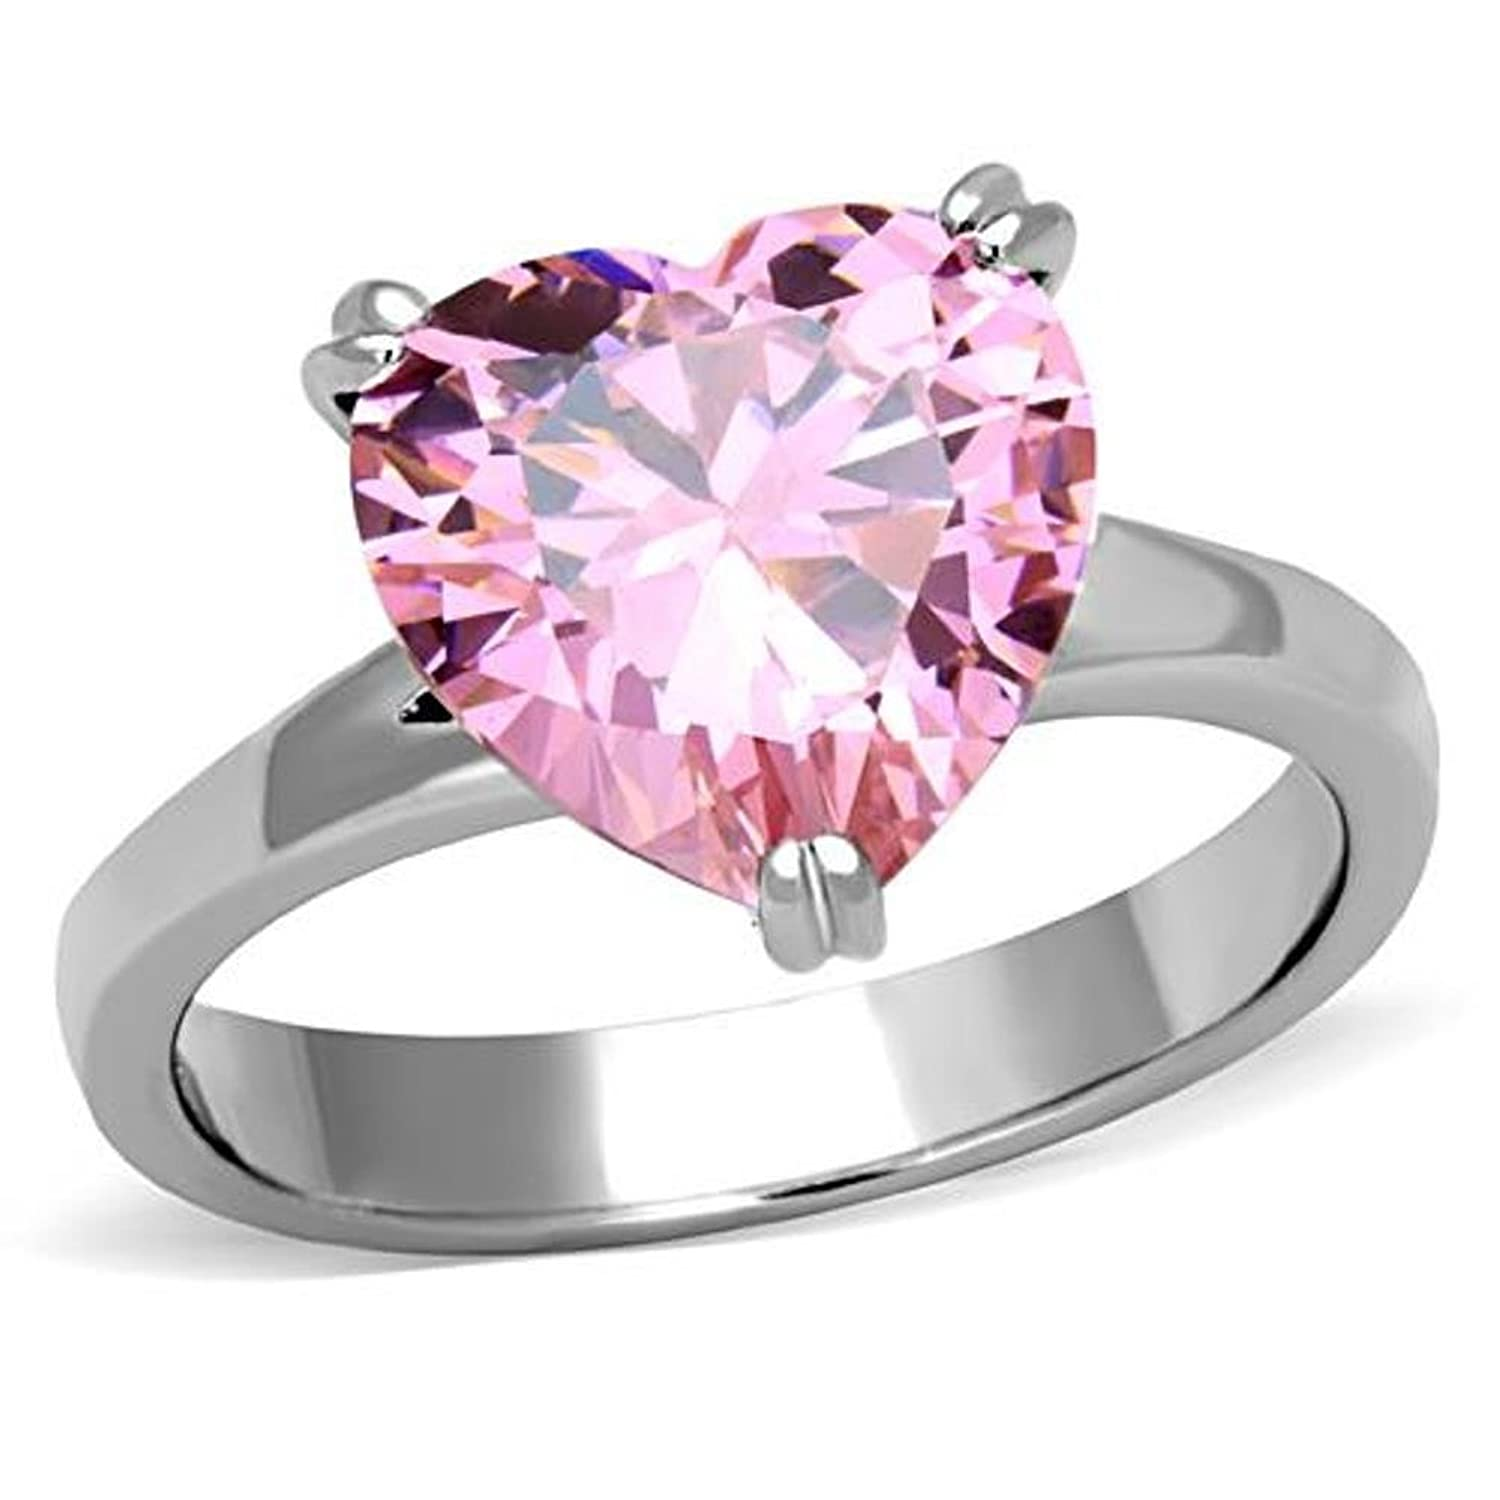 Valentines Pink Heart CZ Stainless Steel Ring TK316|Amazon.com